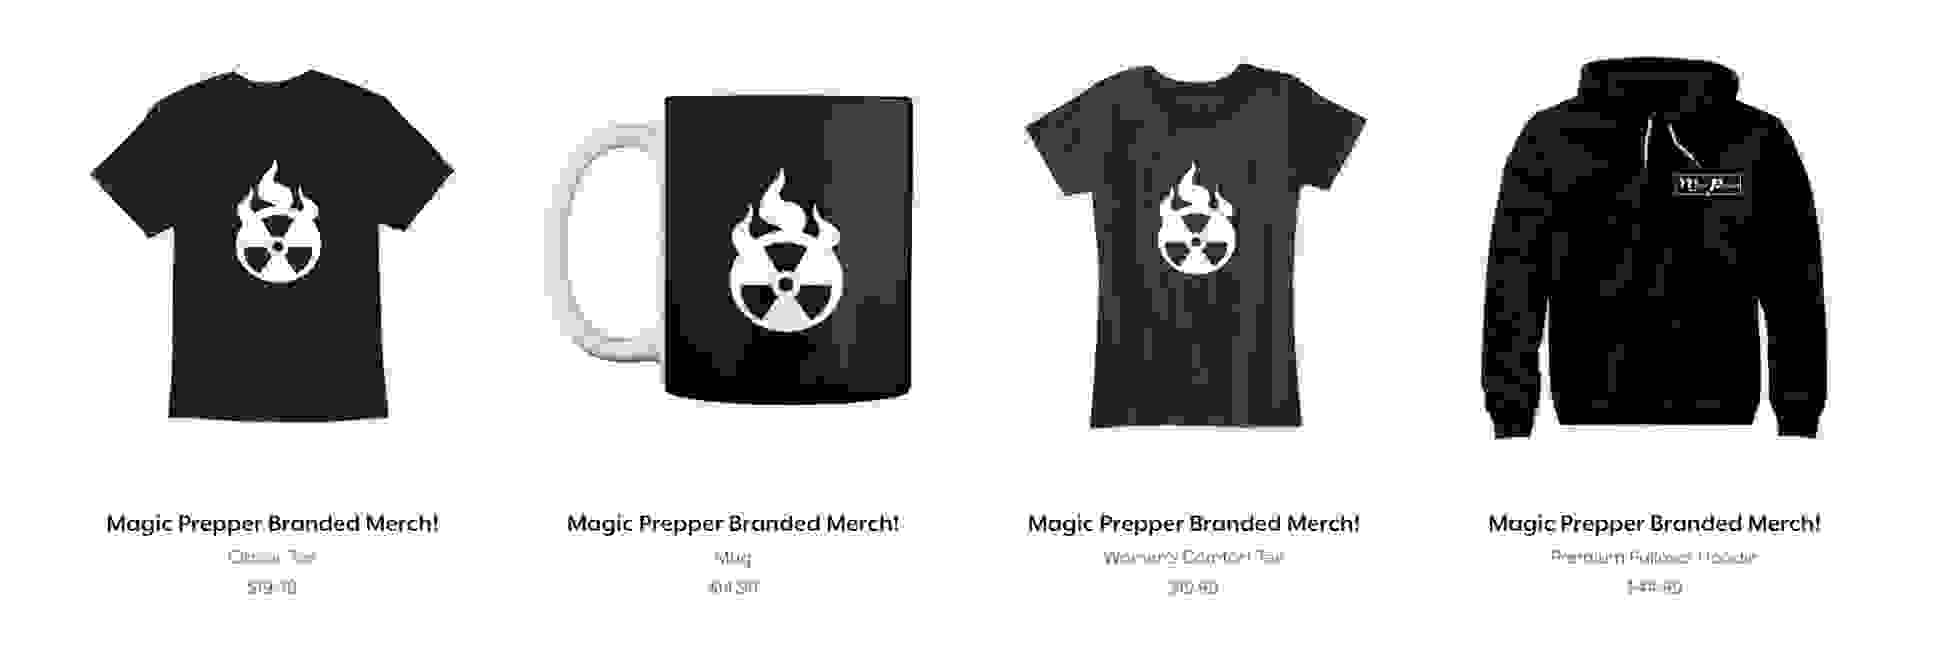 Magic Prepper merchandise for sale through Teespring available here!